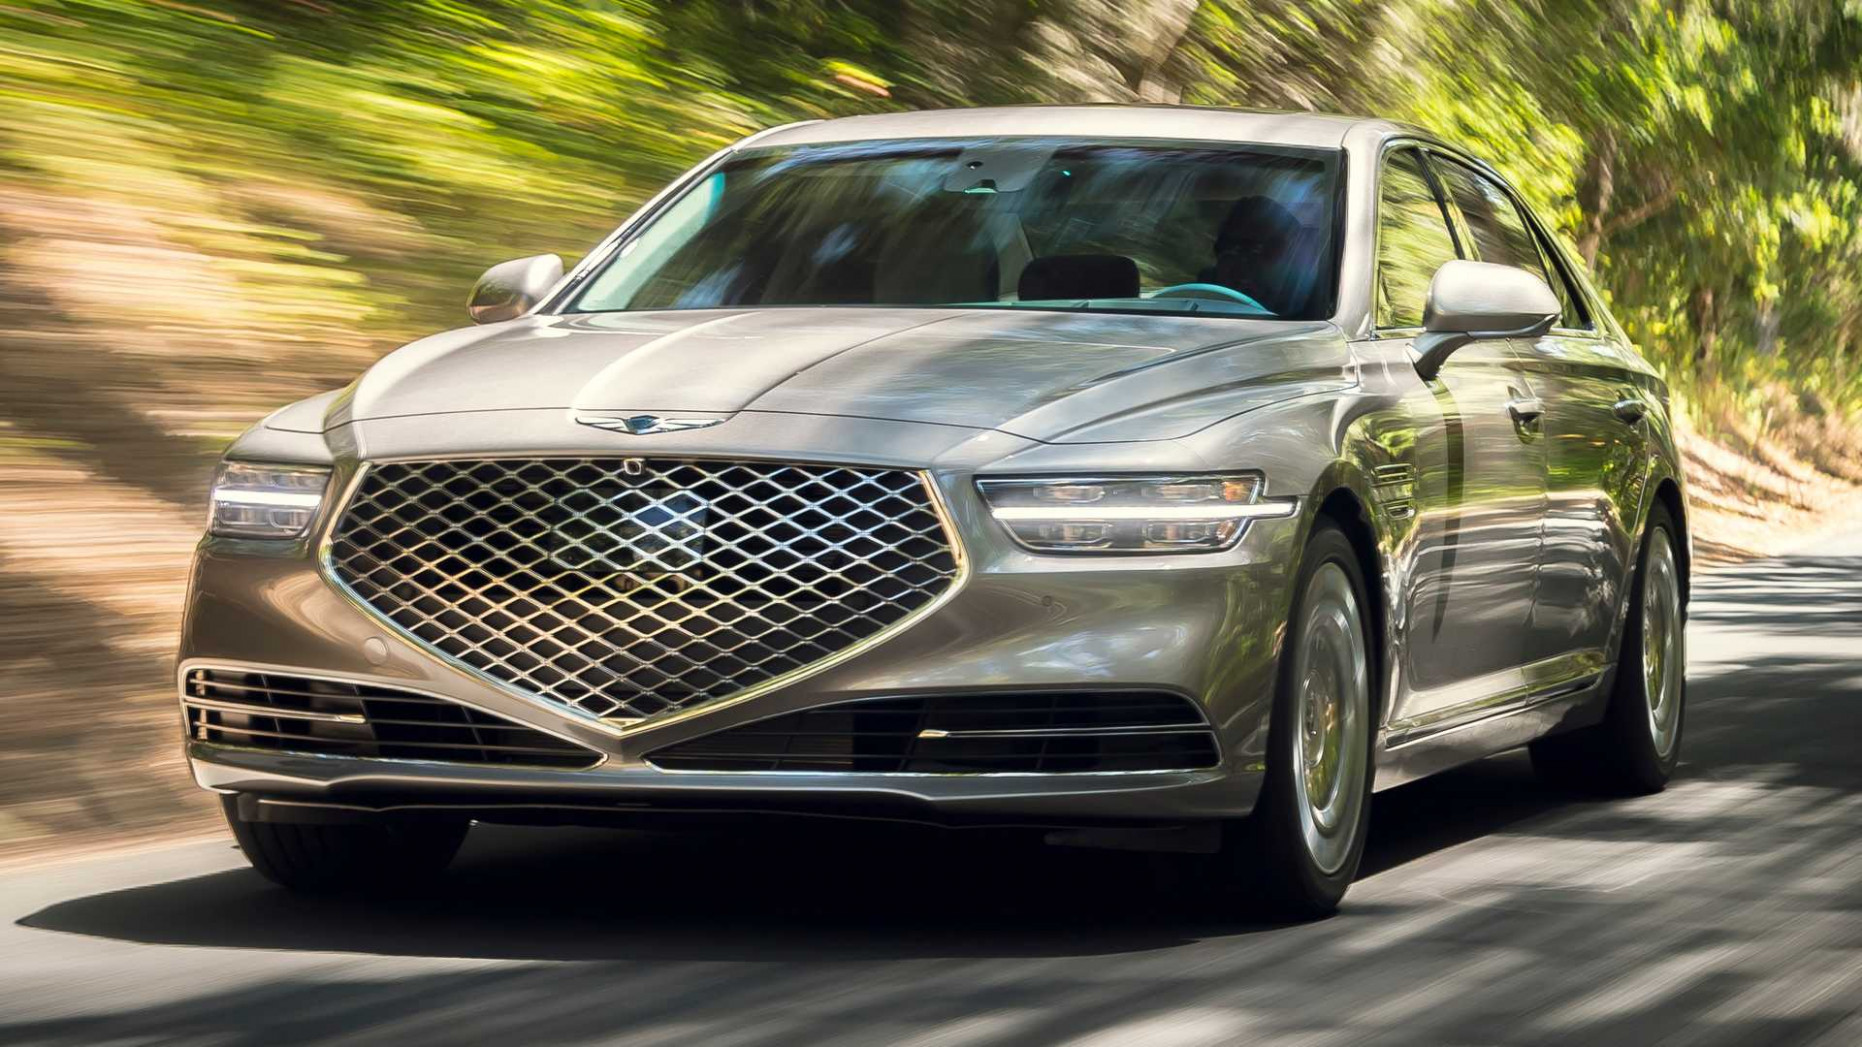 11 Genesis G11 Brings Its Major Facelift To Los Angeles Auto Show - 2020 hyundai equus